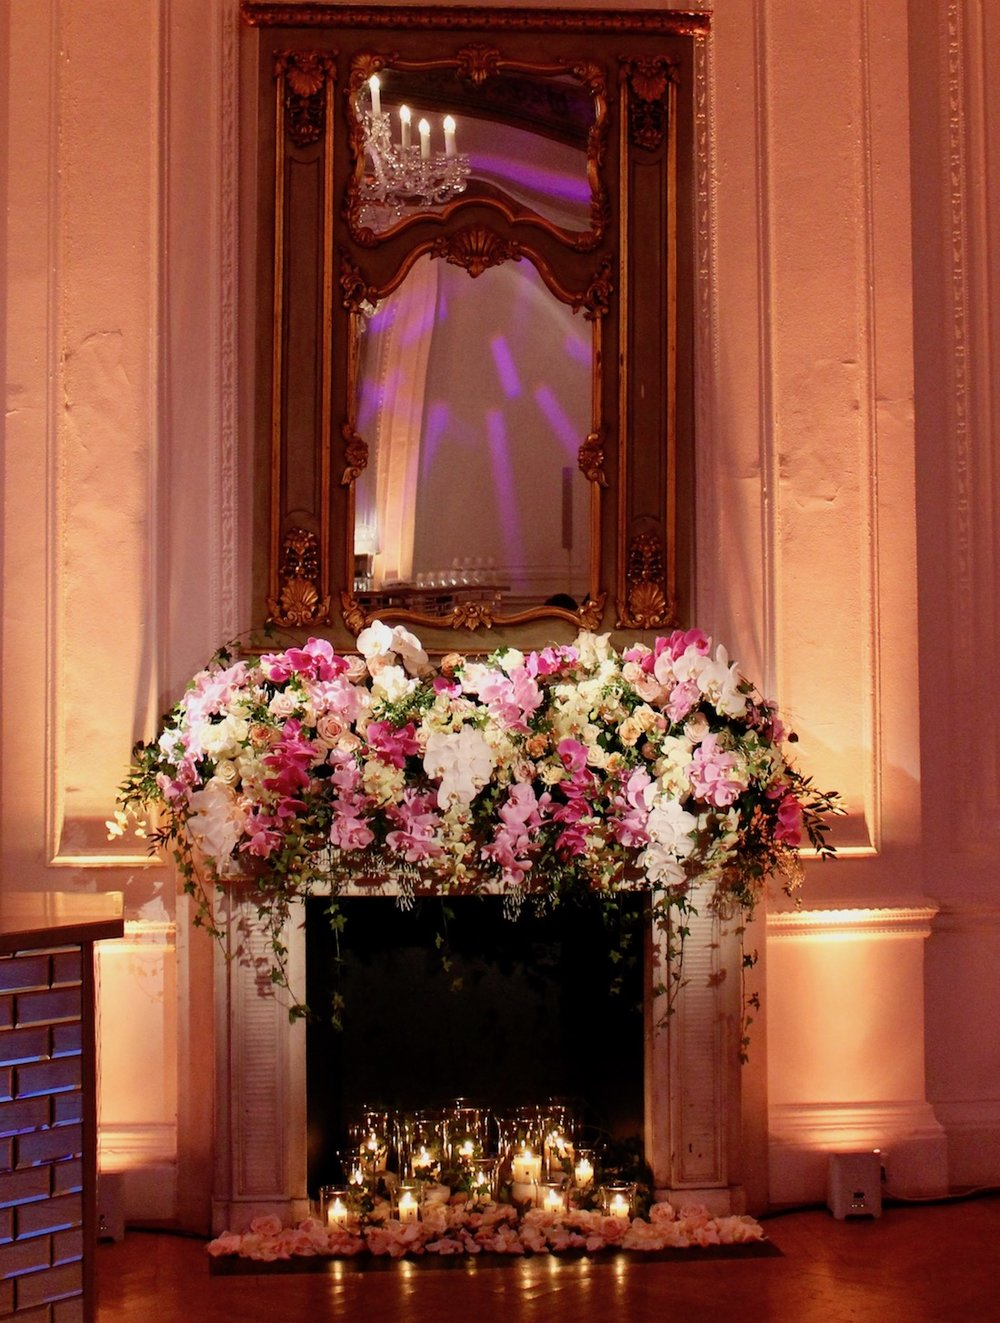 Fireplace adorned with Roses and Orchids by Neill Strain Floral Couture